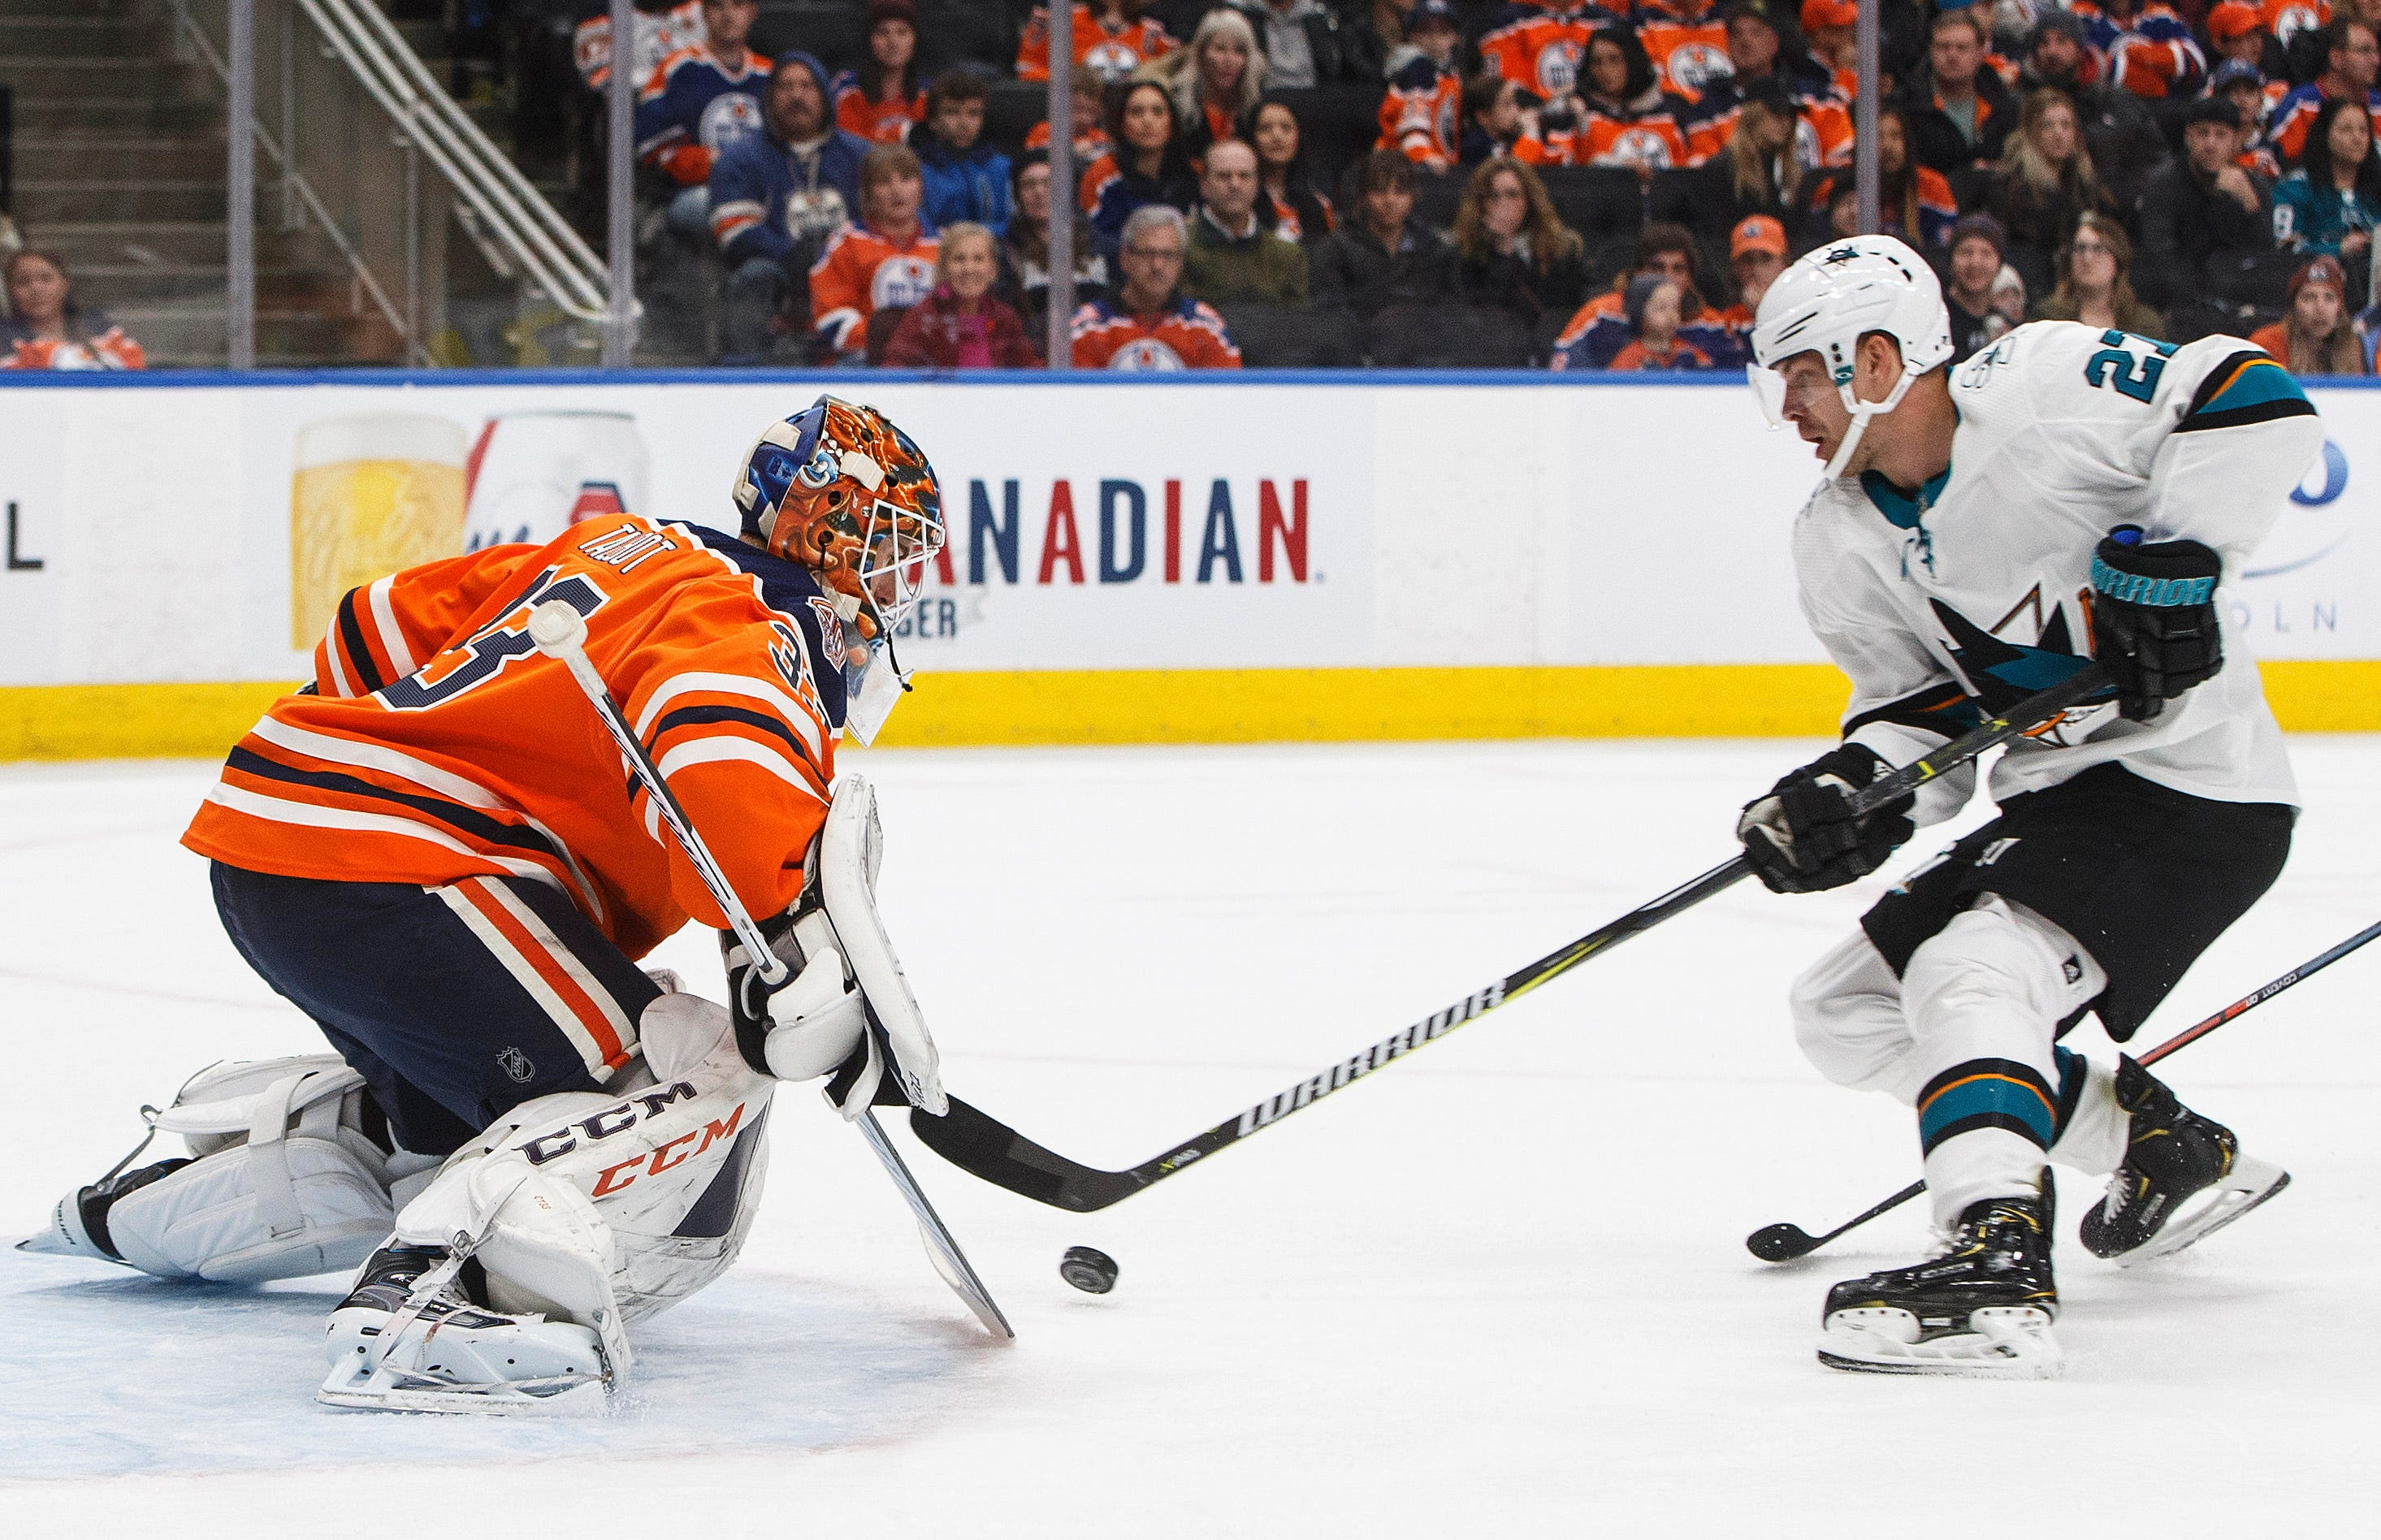 Labanc's hat trick leads Sharks past Oilers, 5-2